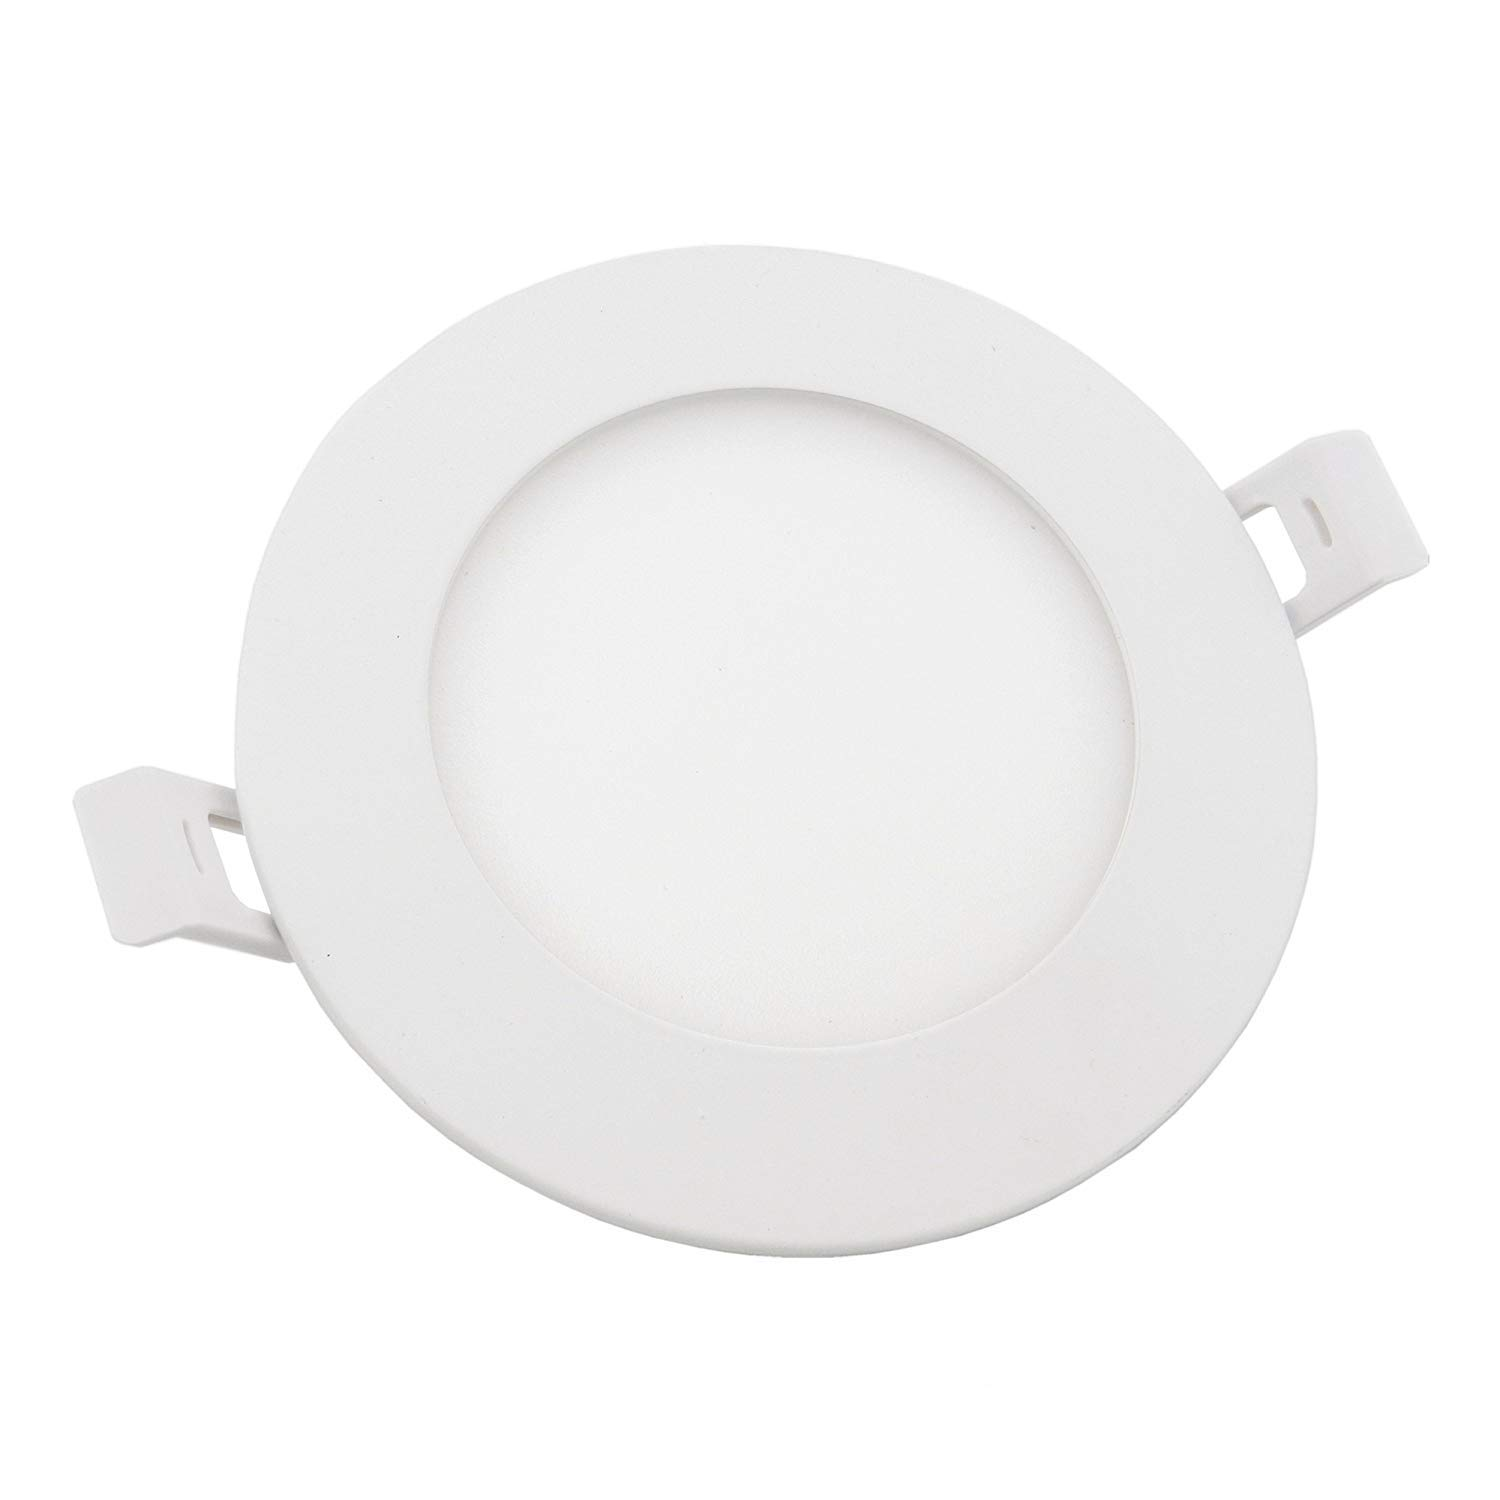 YG 9W 4Inch LED Dimmable Recessed Potlight ETL Energy Star 750LM IC Rated Slim Panel Lighting,LED Ceiling Light with Junction Box 6 Pack(Round - Neutral White)